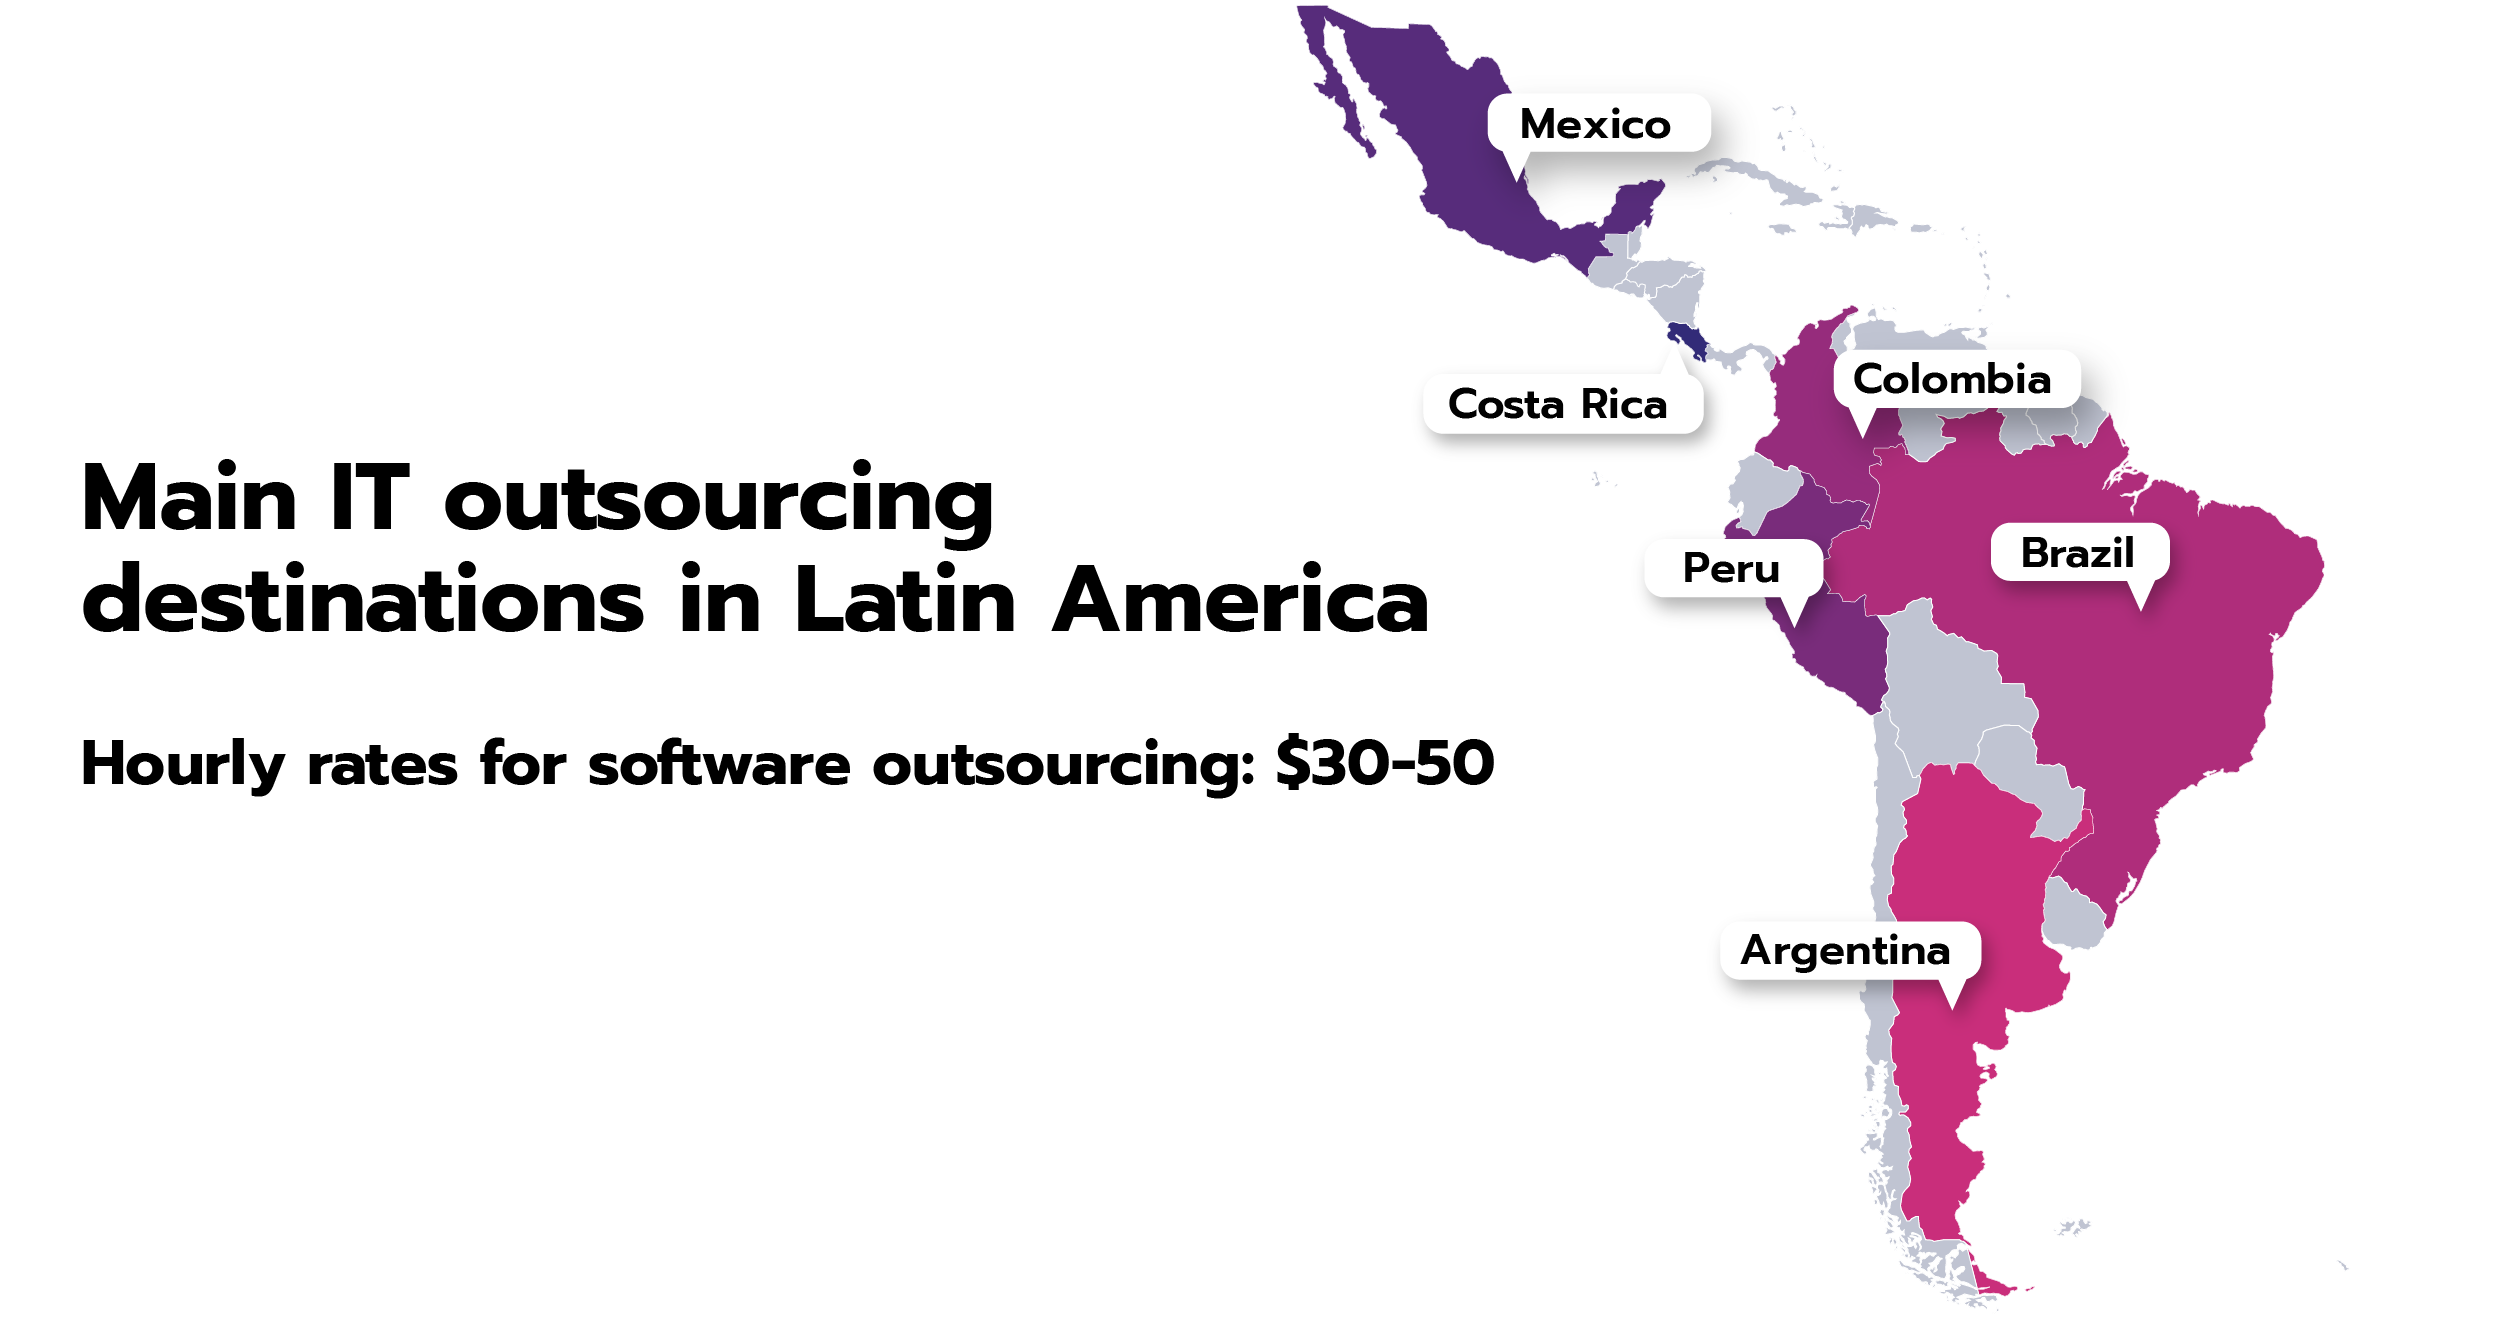 Offshore software development rates in Latin America.